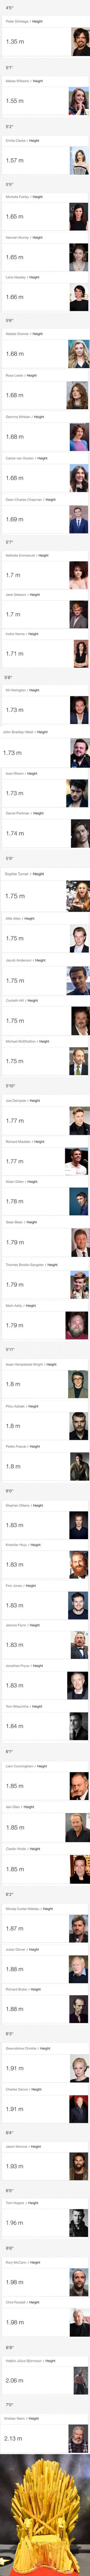 Game Of Thrones characters categorized by (real life) height